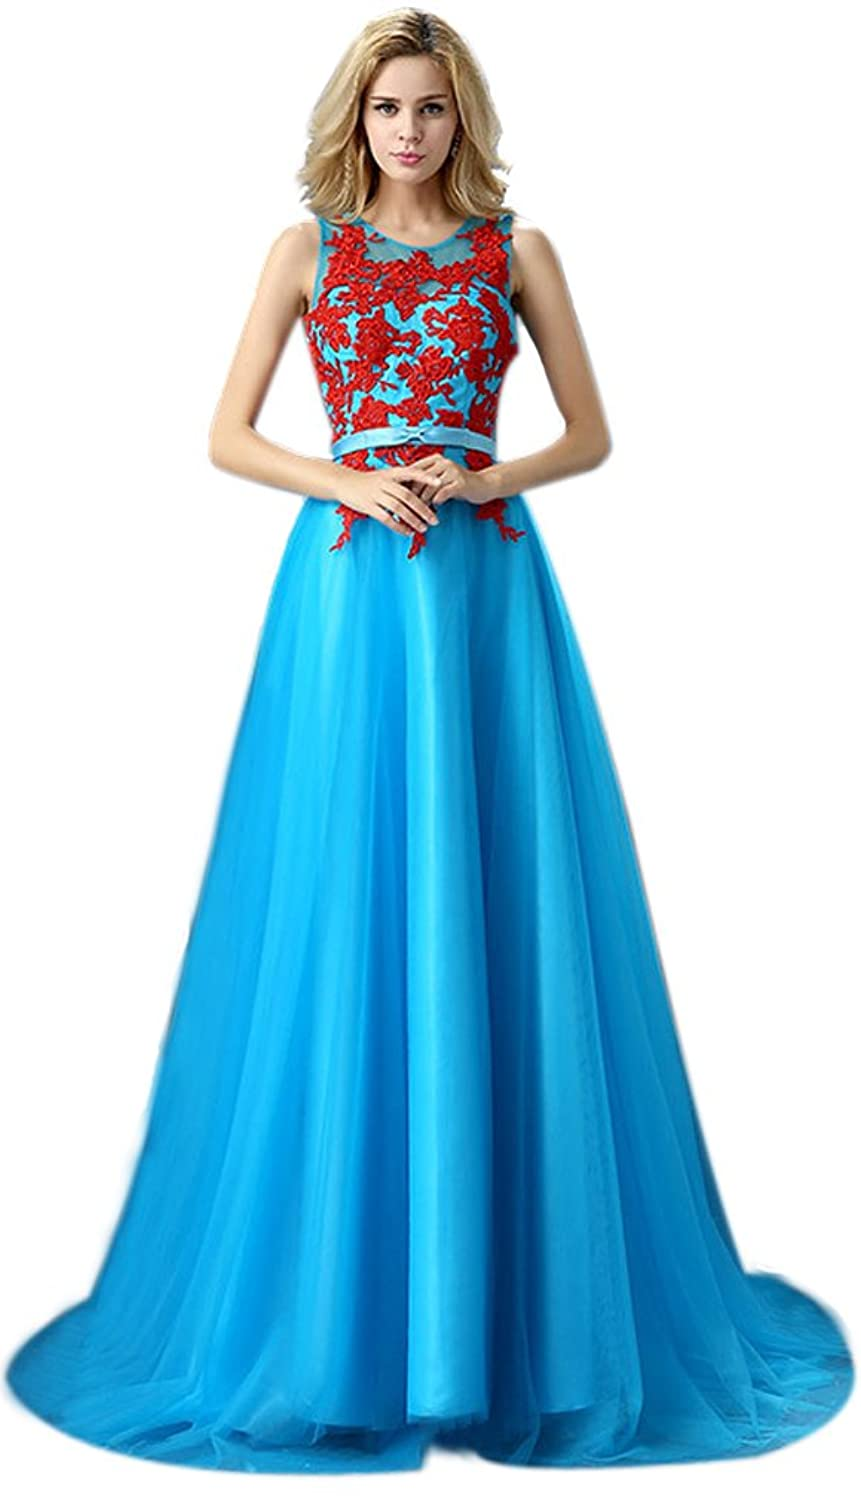 Eyekepper Sleevless Back V-Neck Prom Party Evening Dress